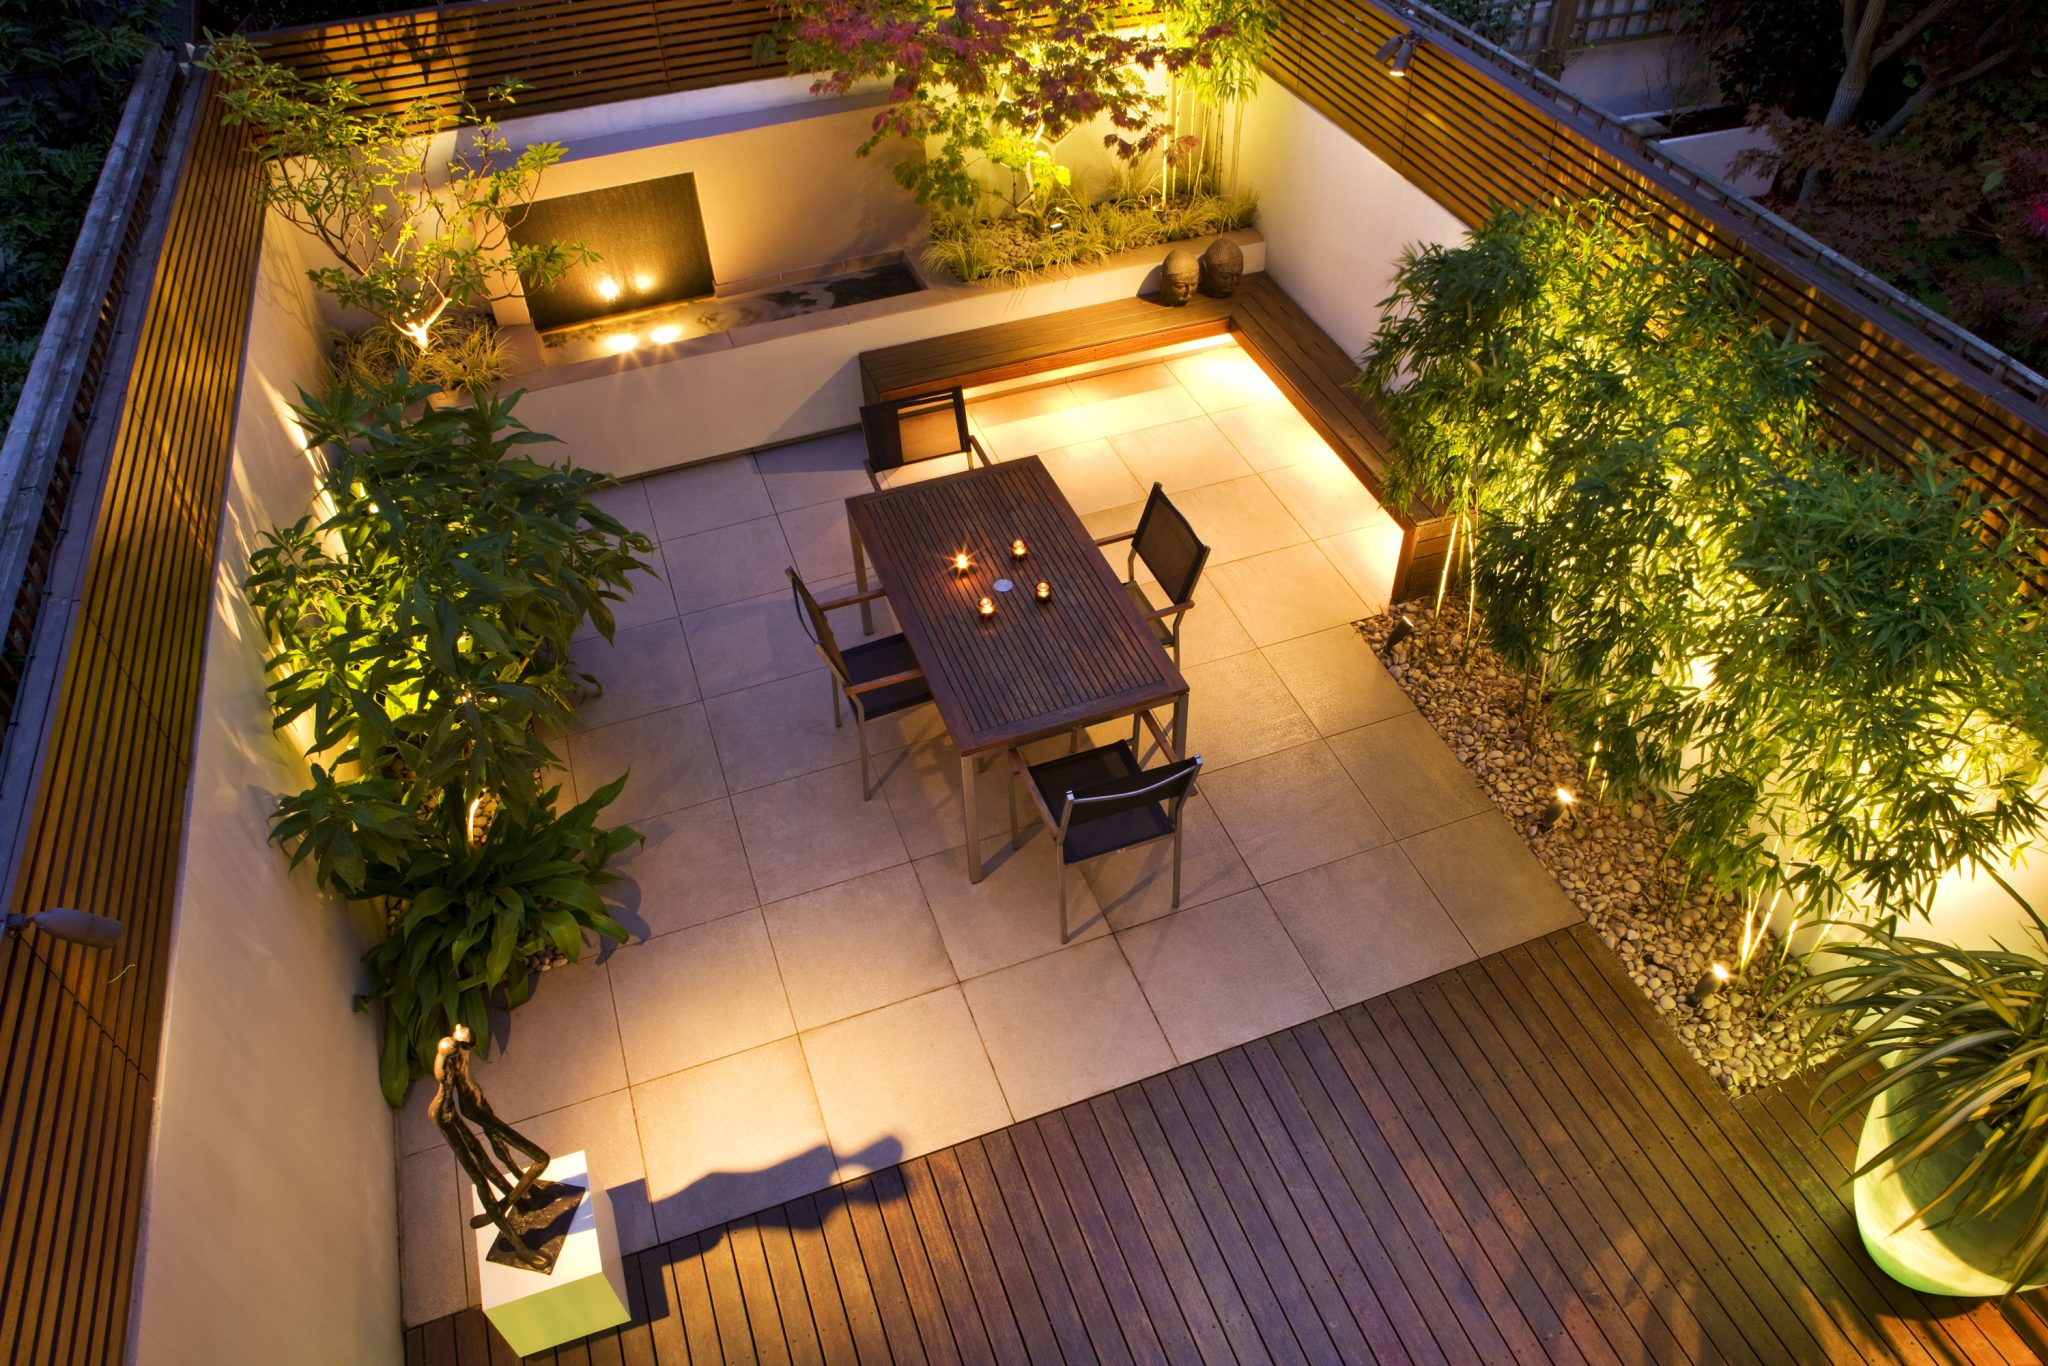 Garden Lighting Gallery from Garden Lighting London